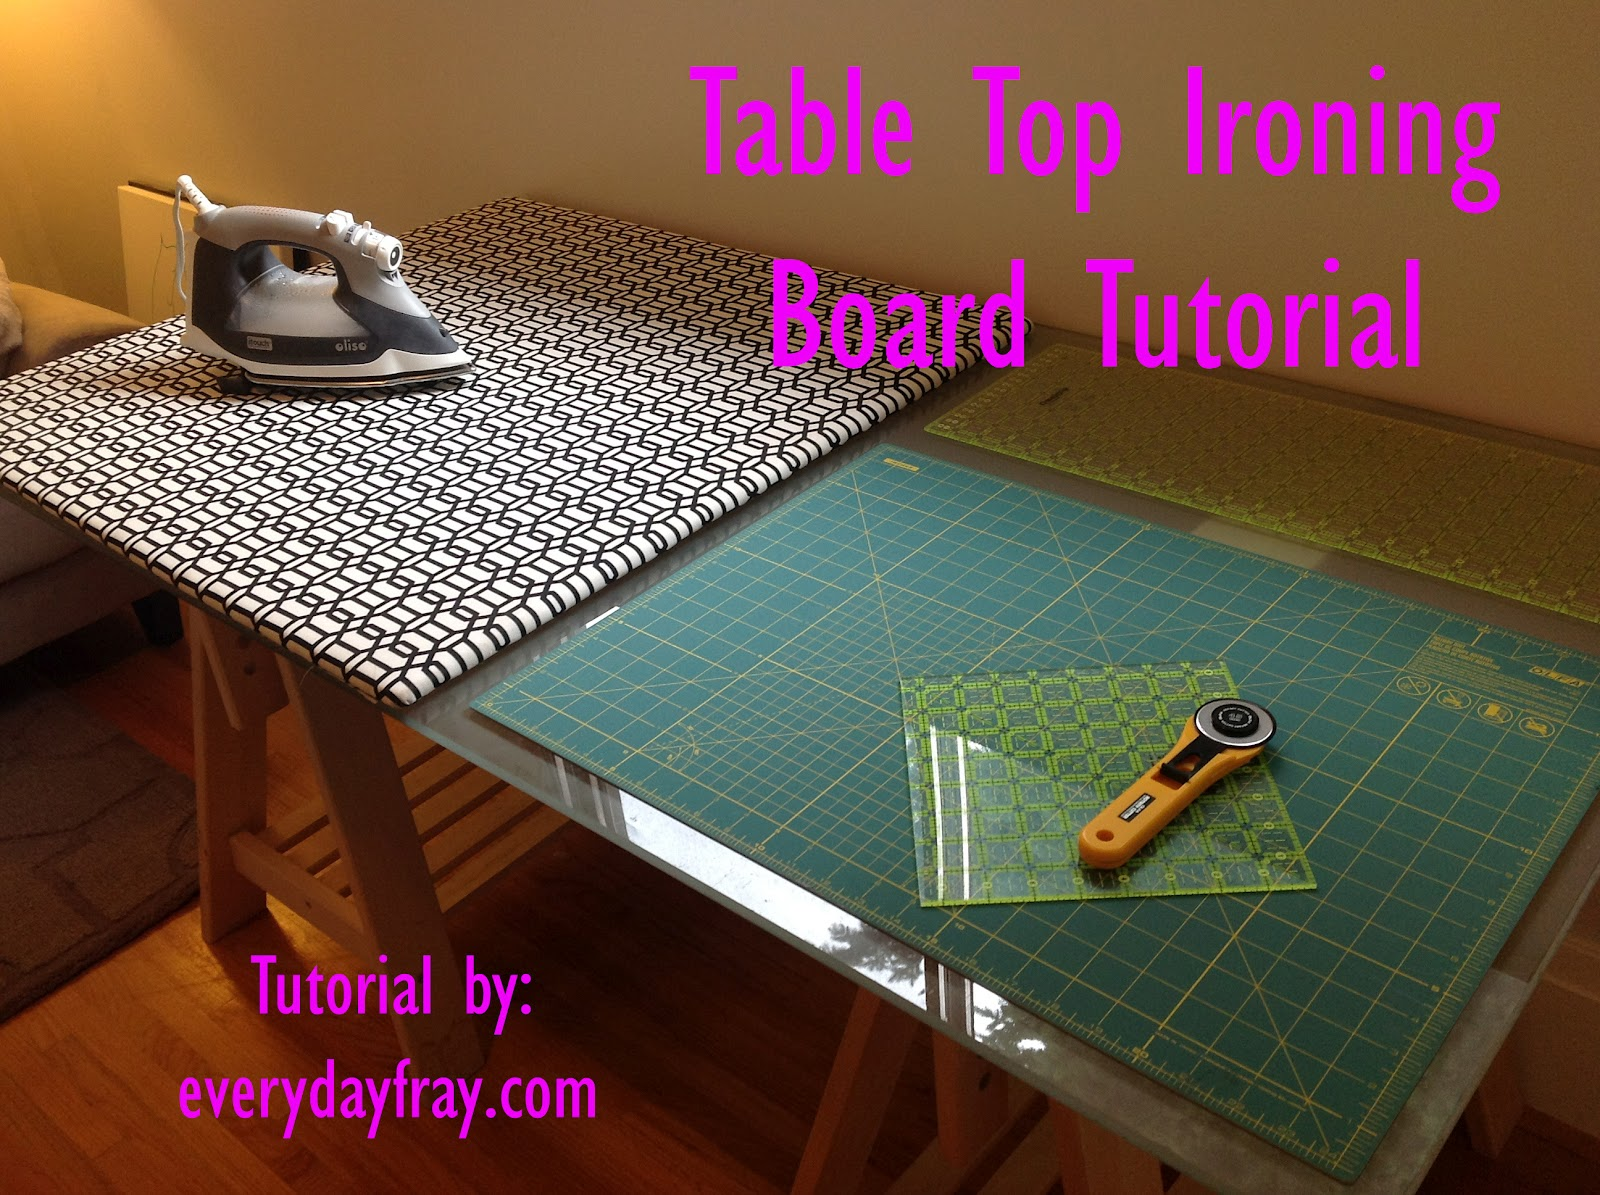 Simple Table Top Ironing Board Tutorial